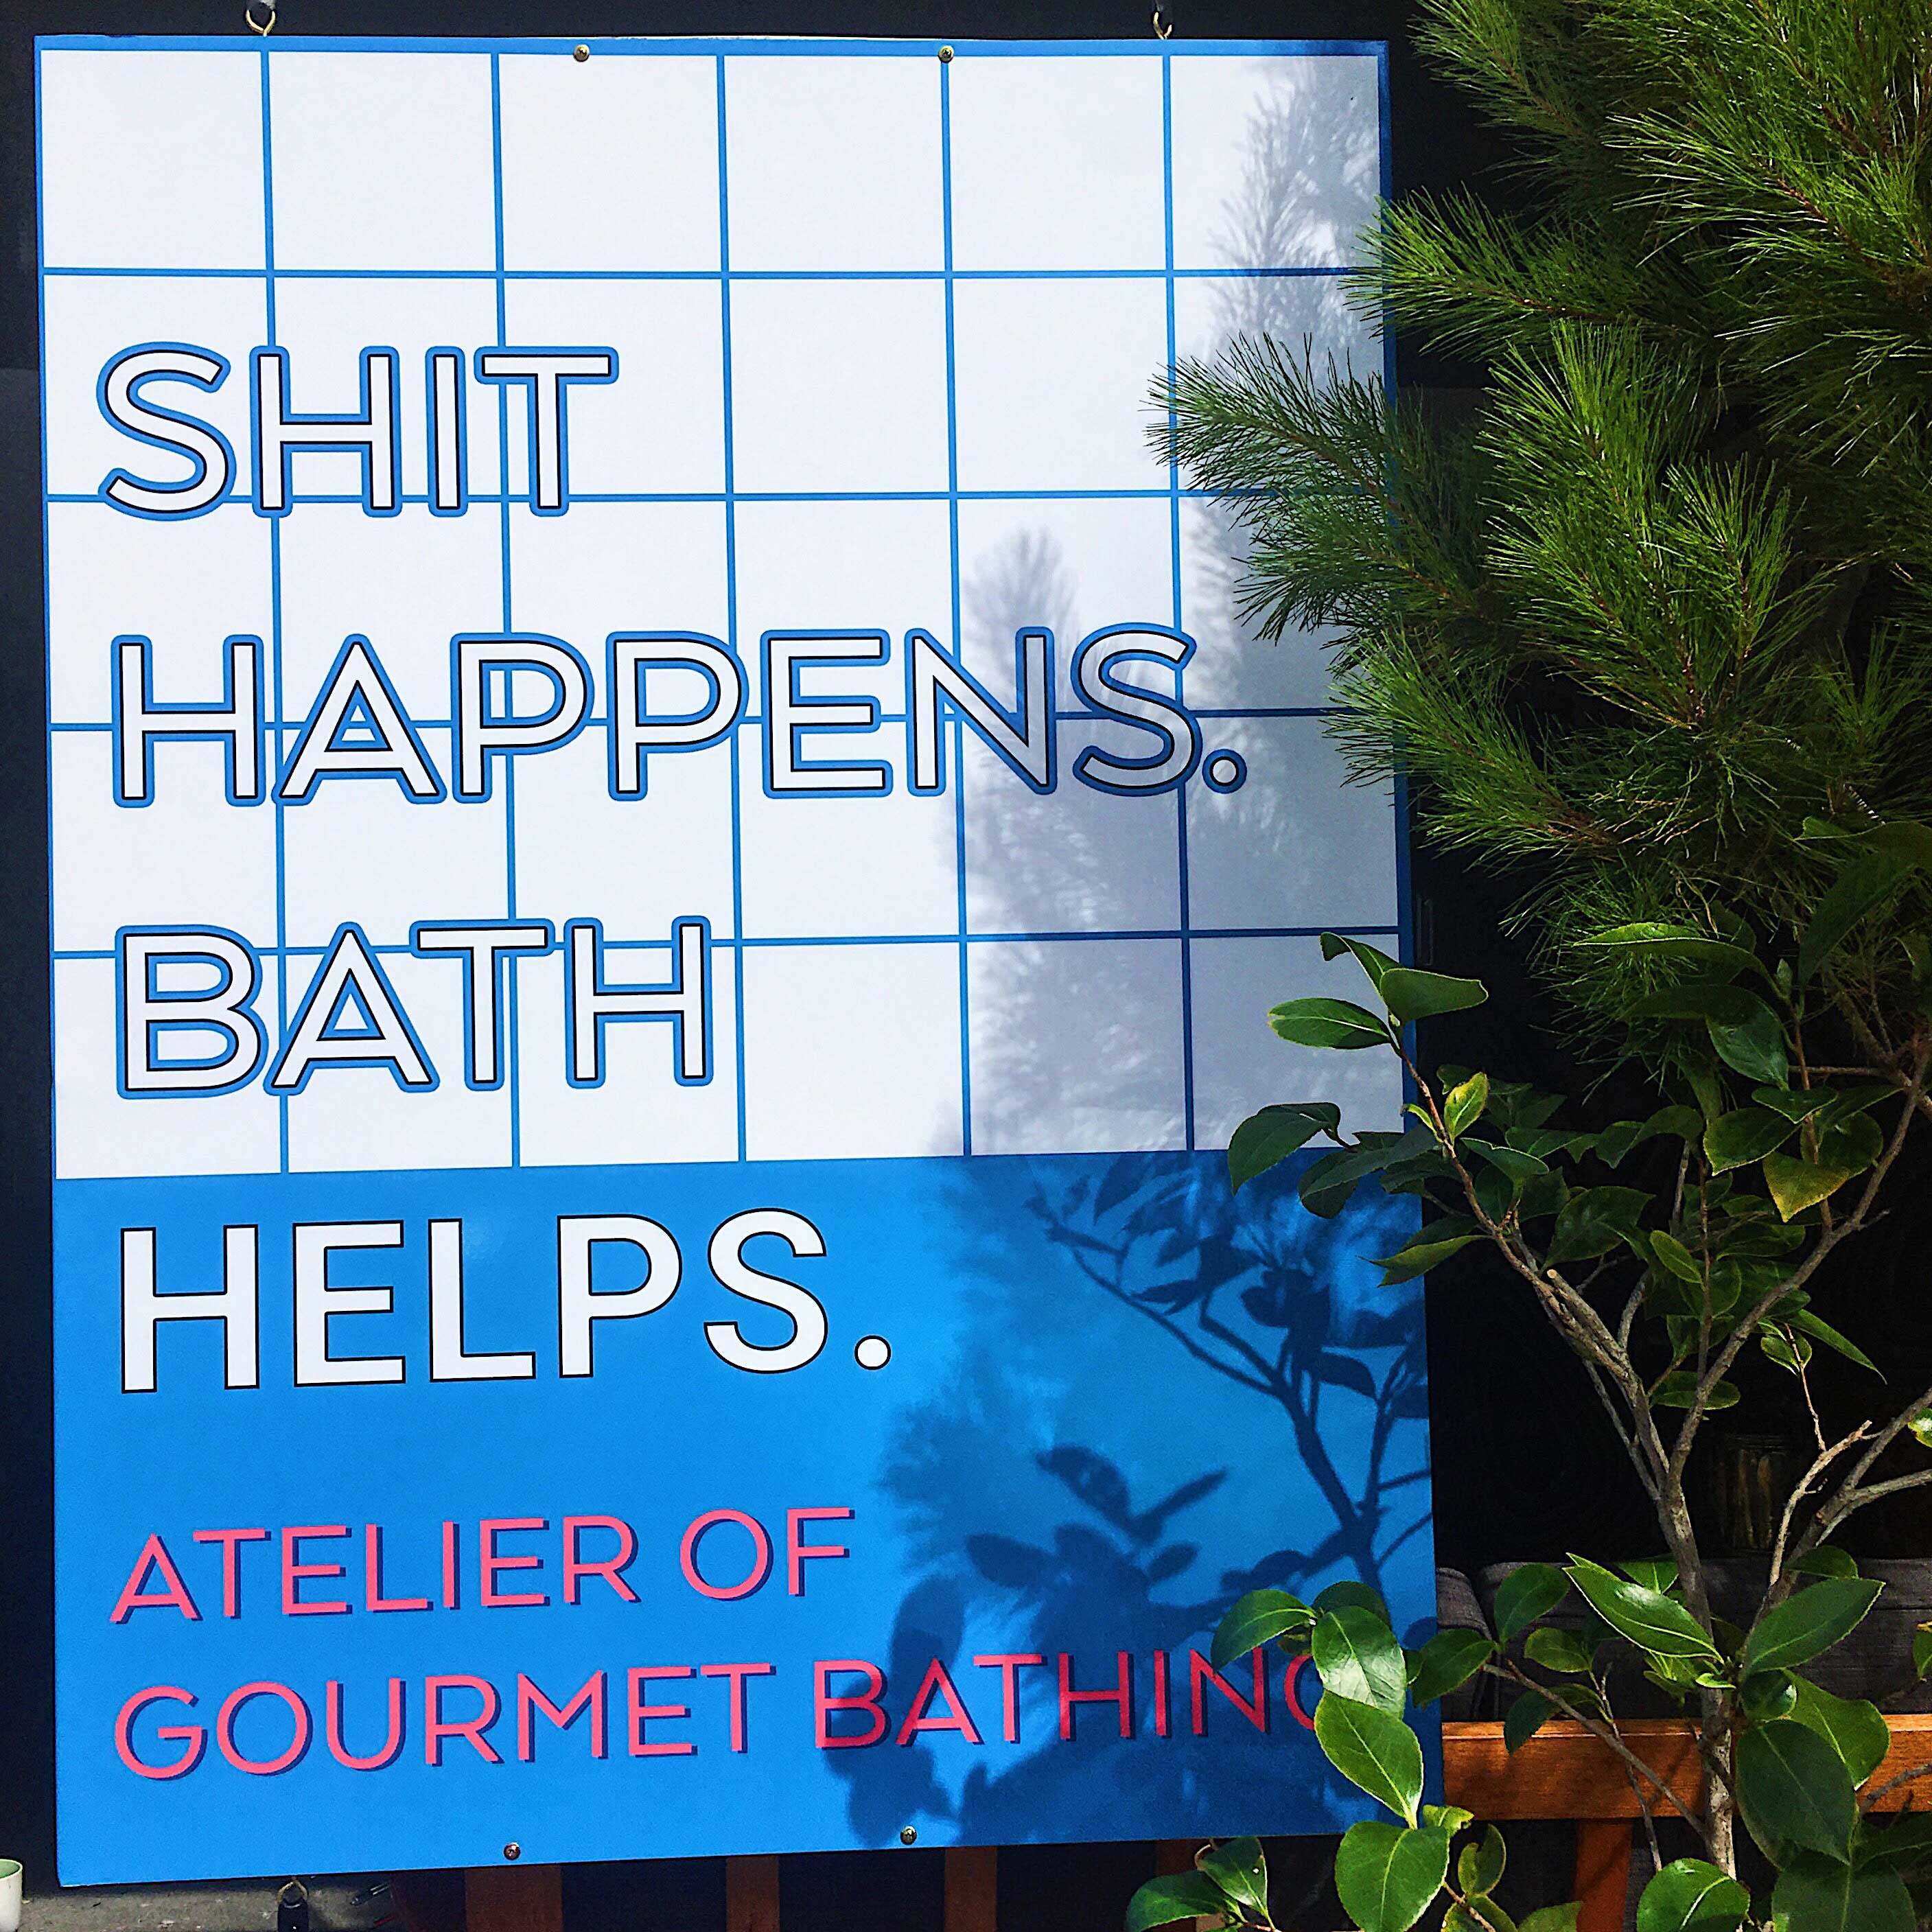 atelier of gourmet bathing